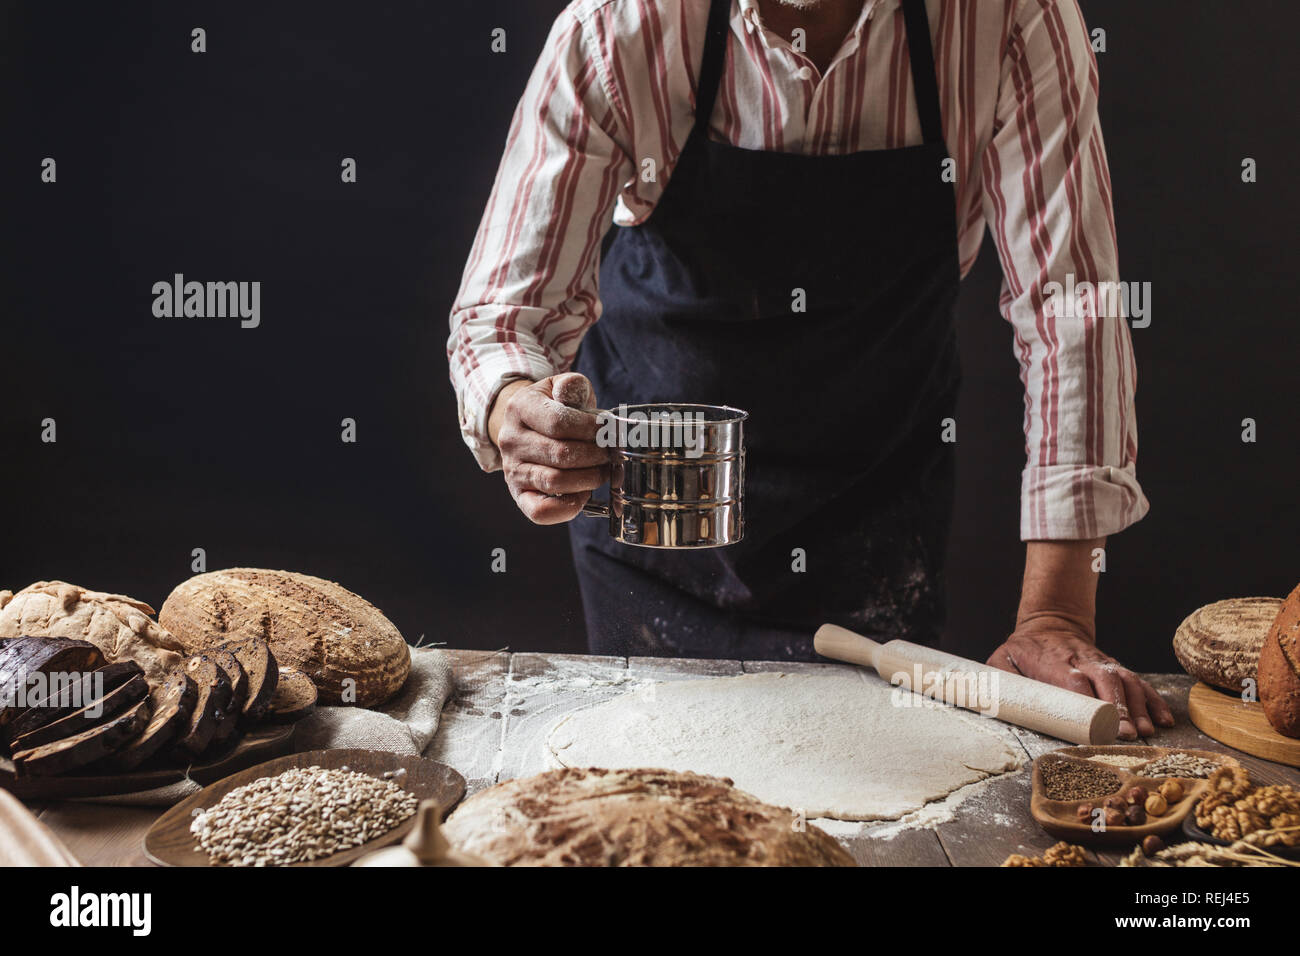 Man sprinkling some flour on dough. Hands kneading dough, cropped view - Stock Image